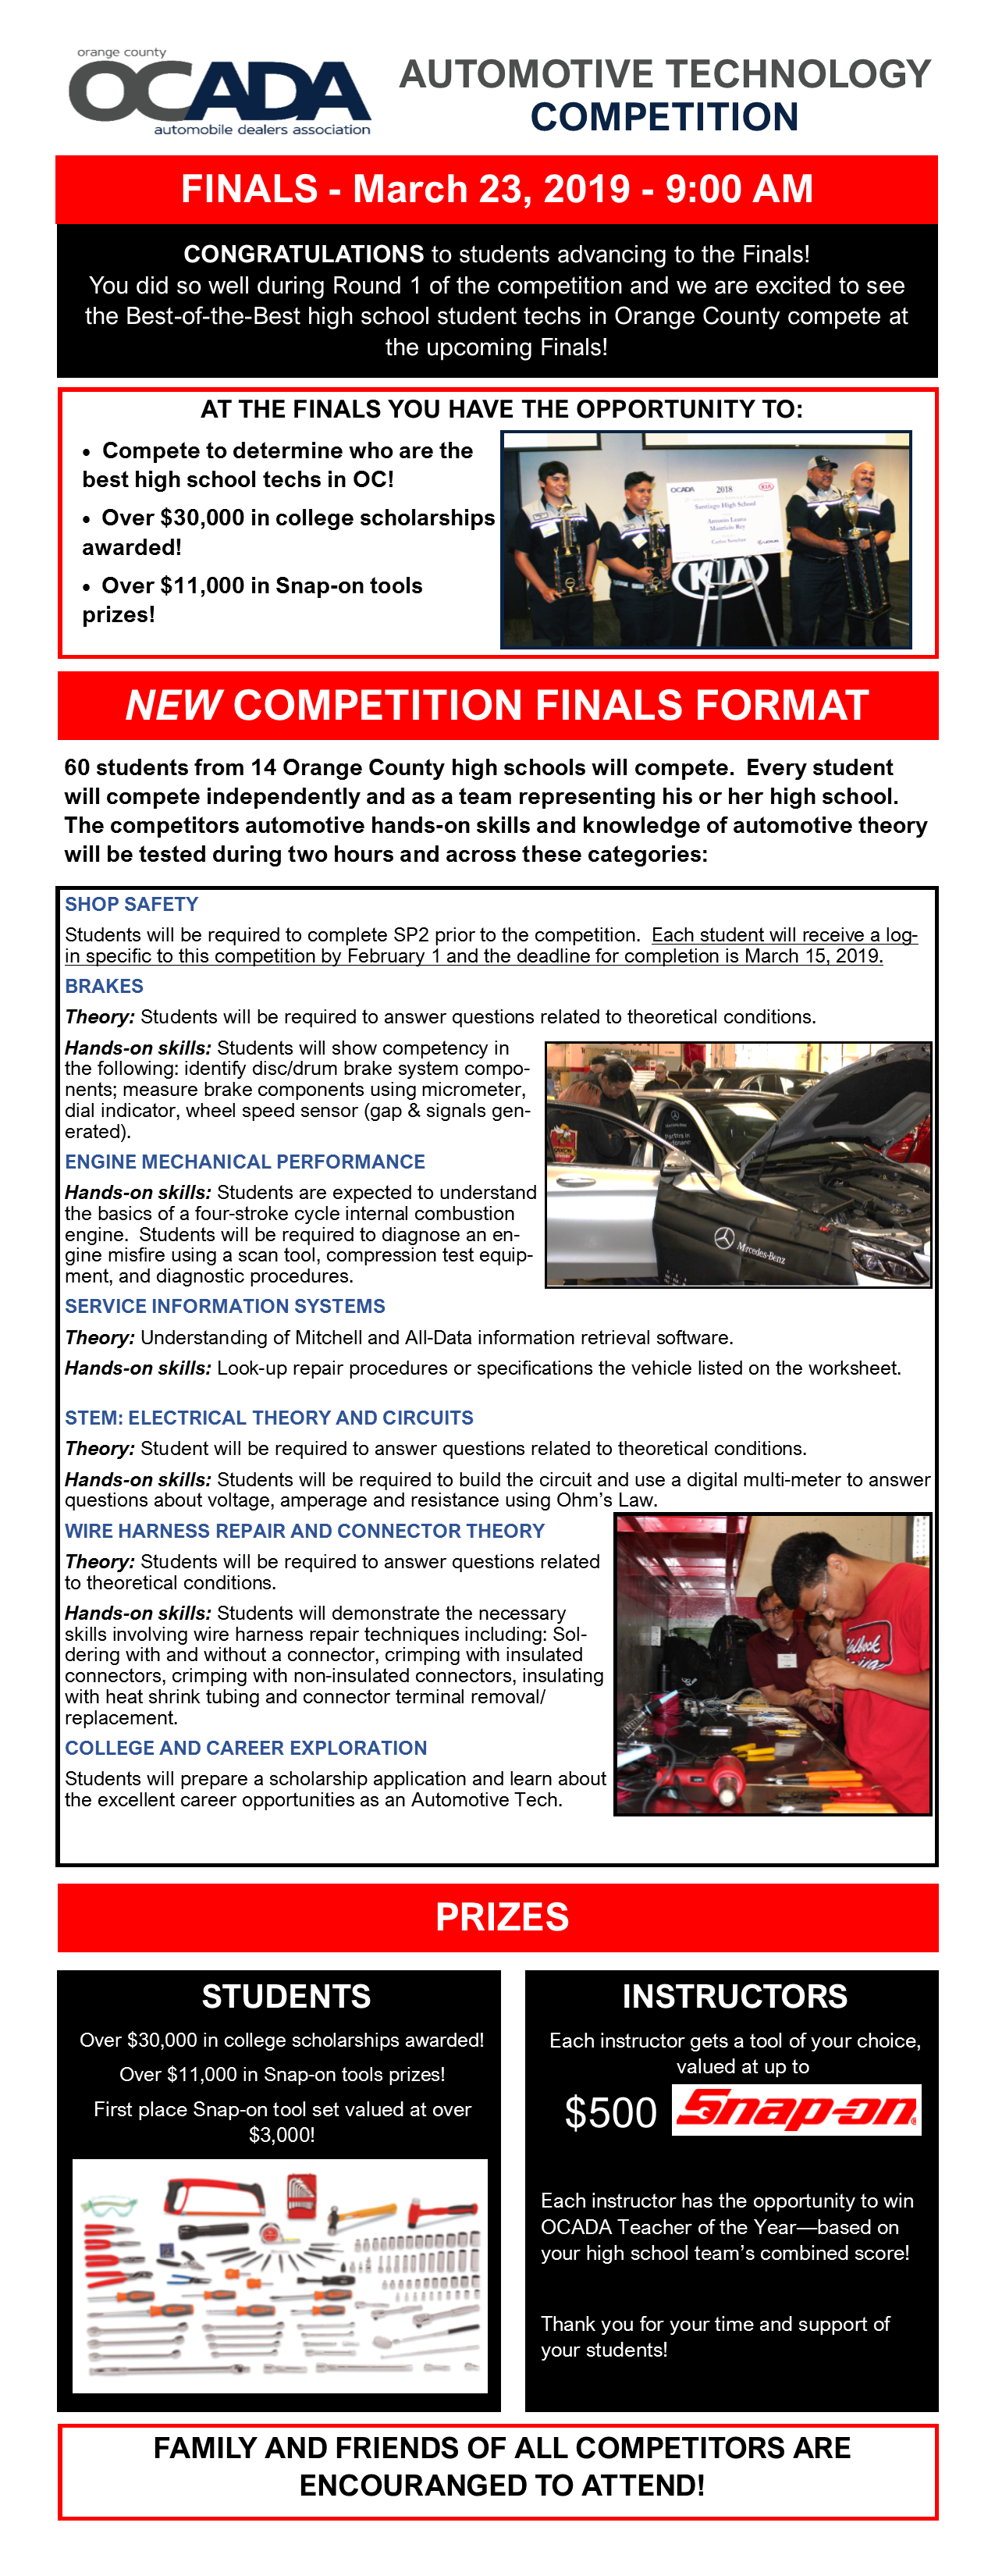 OCADA High School Automotive Technology Competition